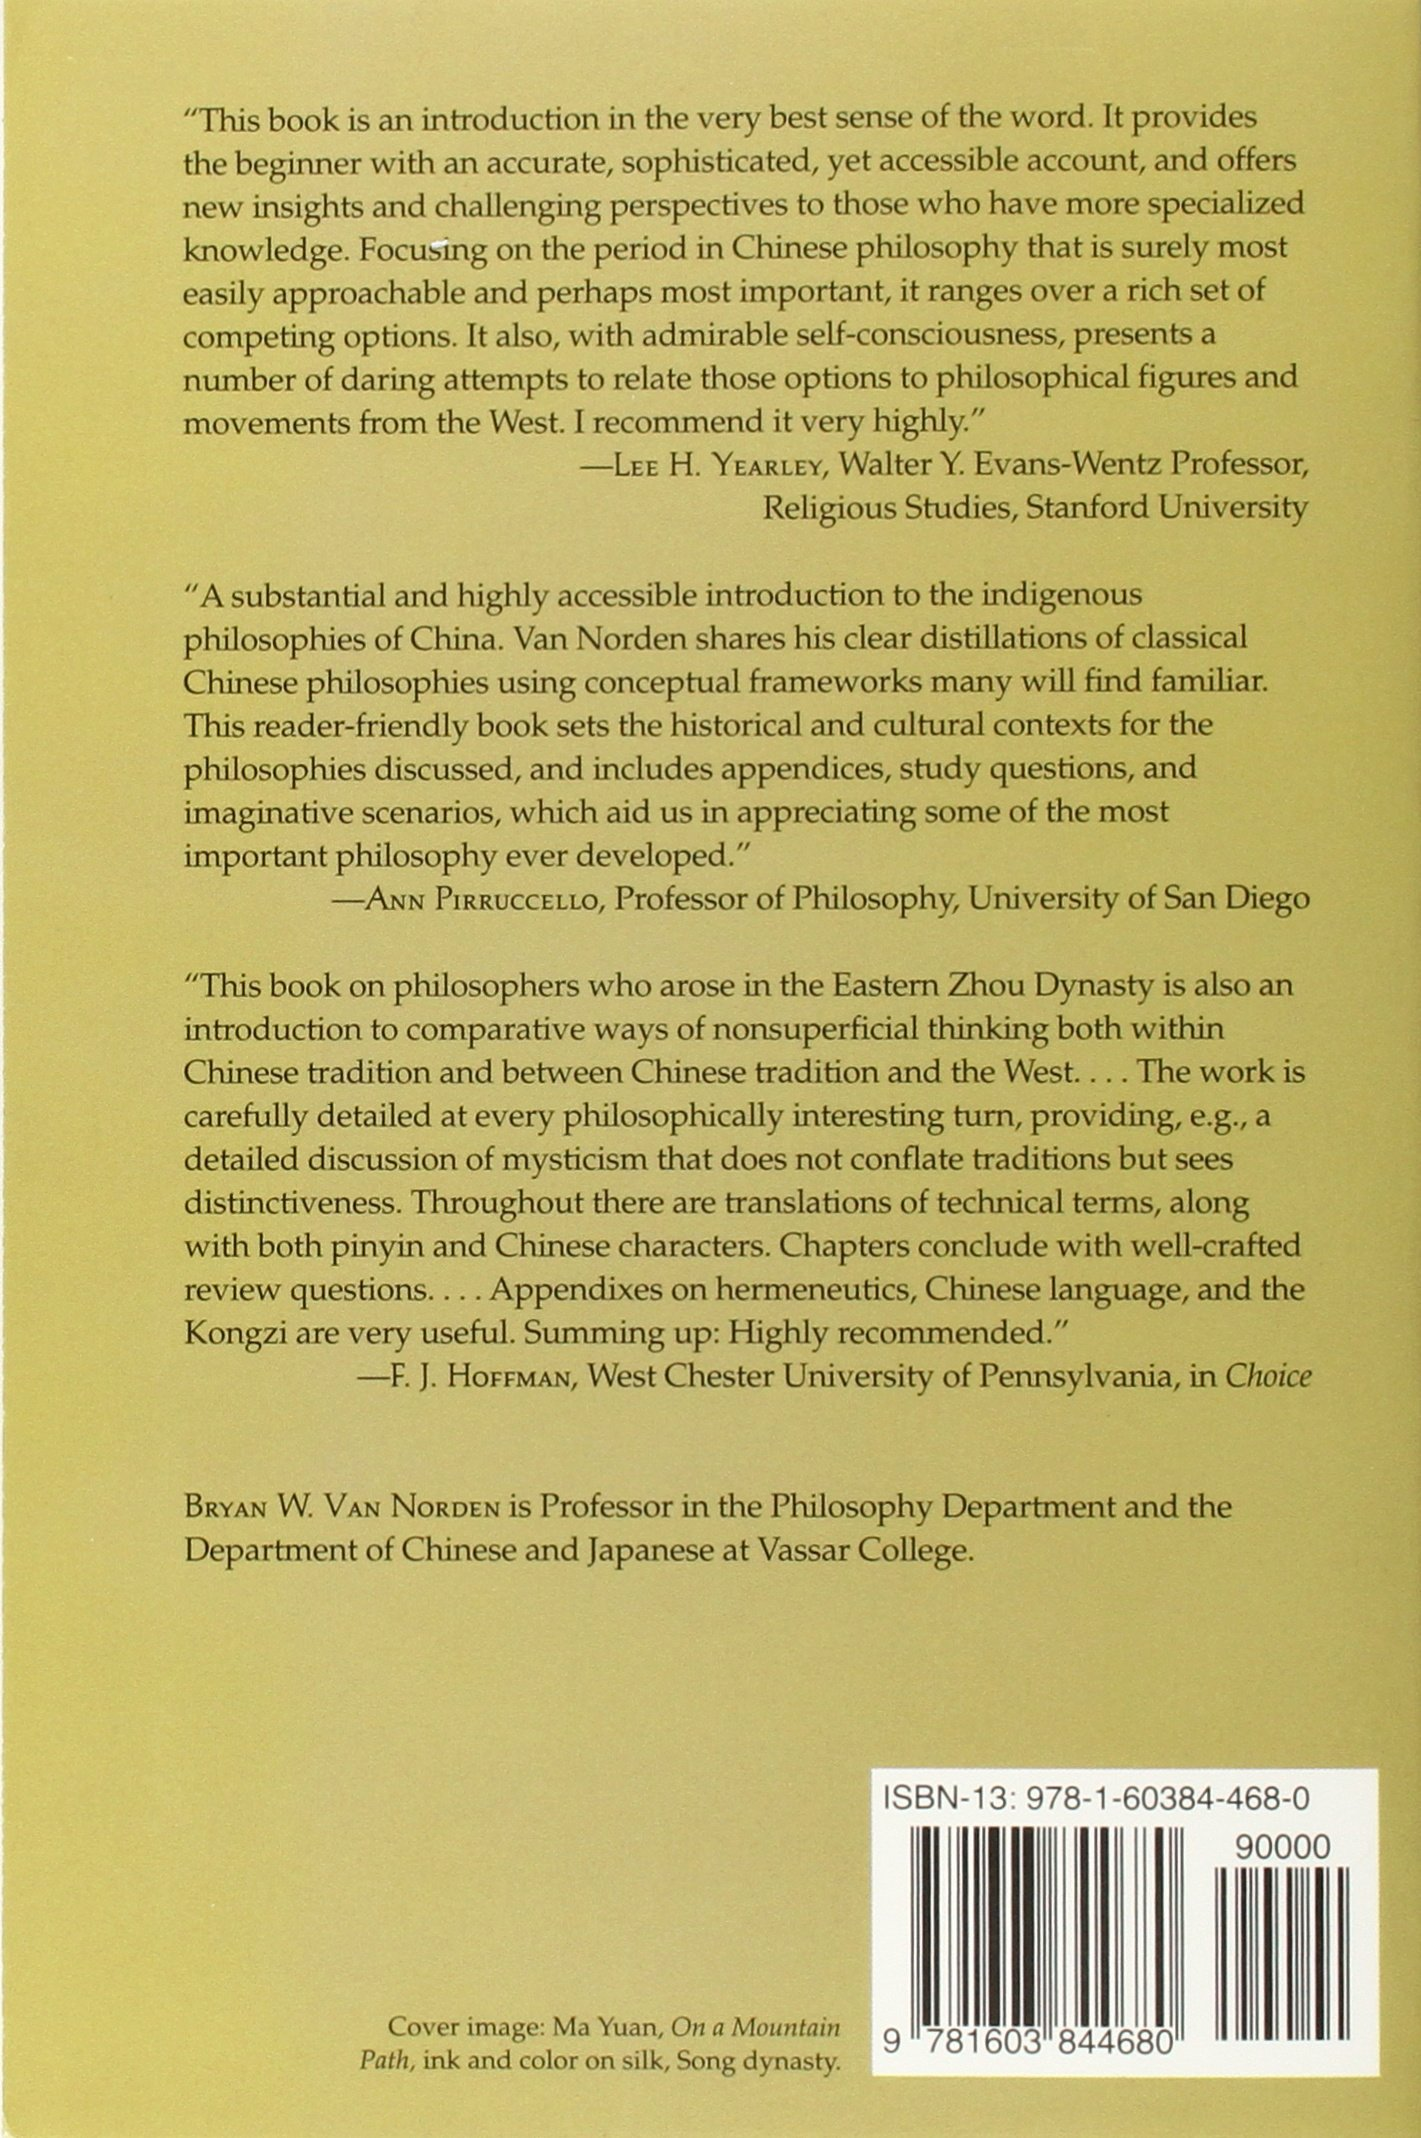 Introduction to Classical Chinese Philosophy: Amazon.co.uk: Bryan W. Van  Norden: 9781603844680: Books